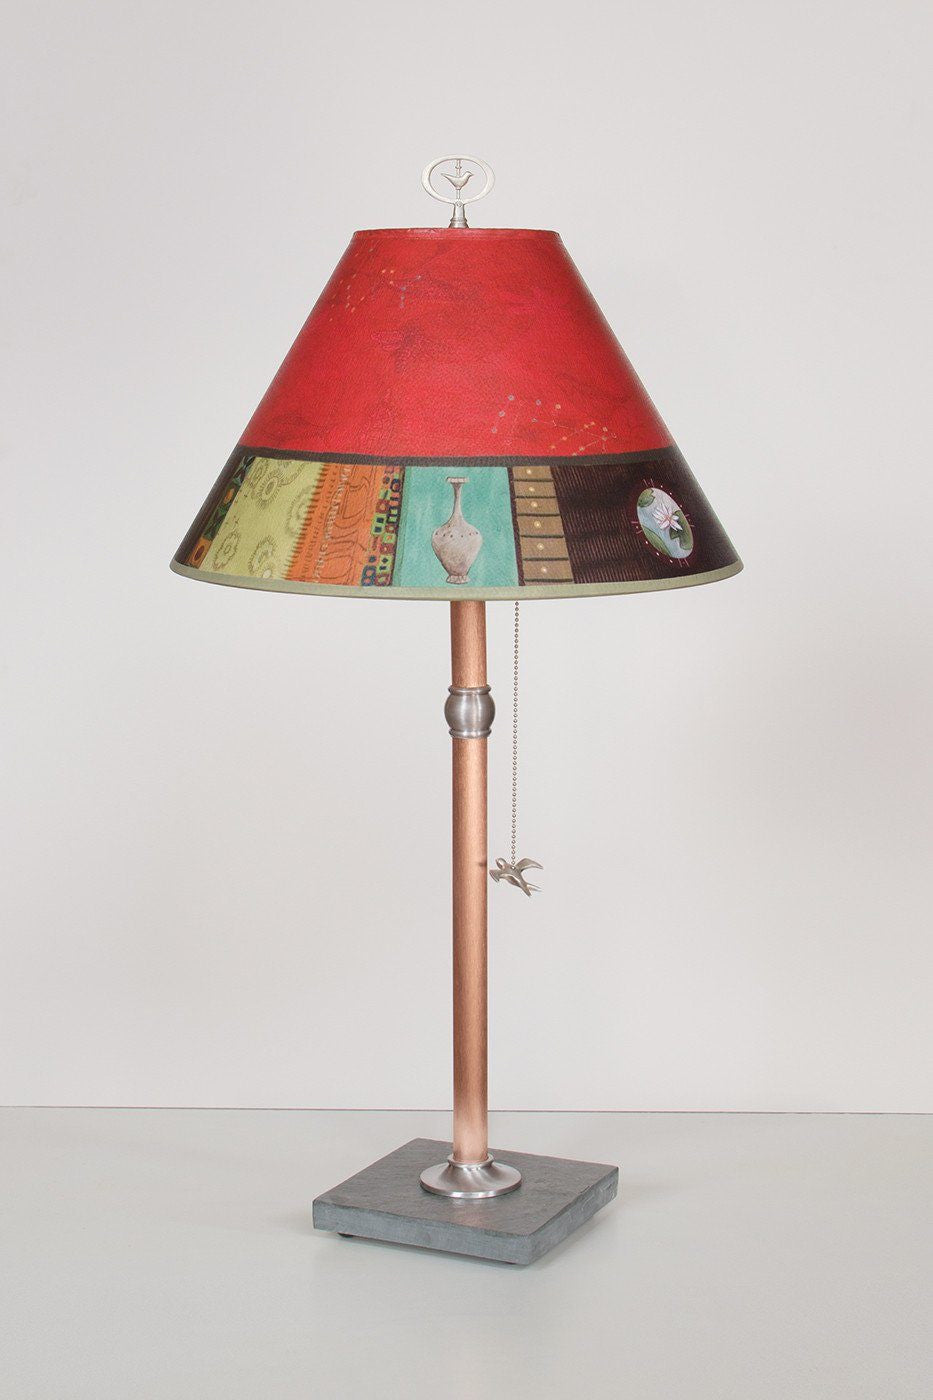 Copper Table Lamp with Medium Conical Shade in Red Match - Lit